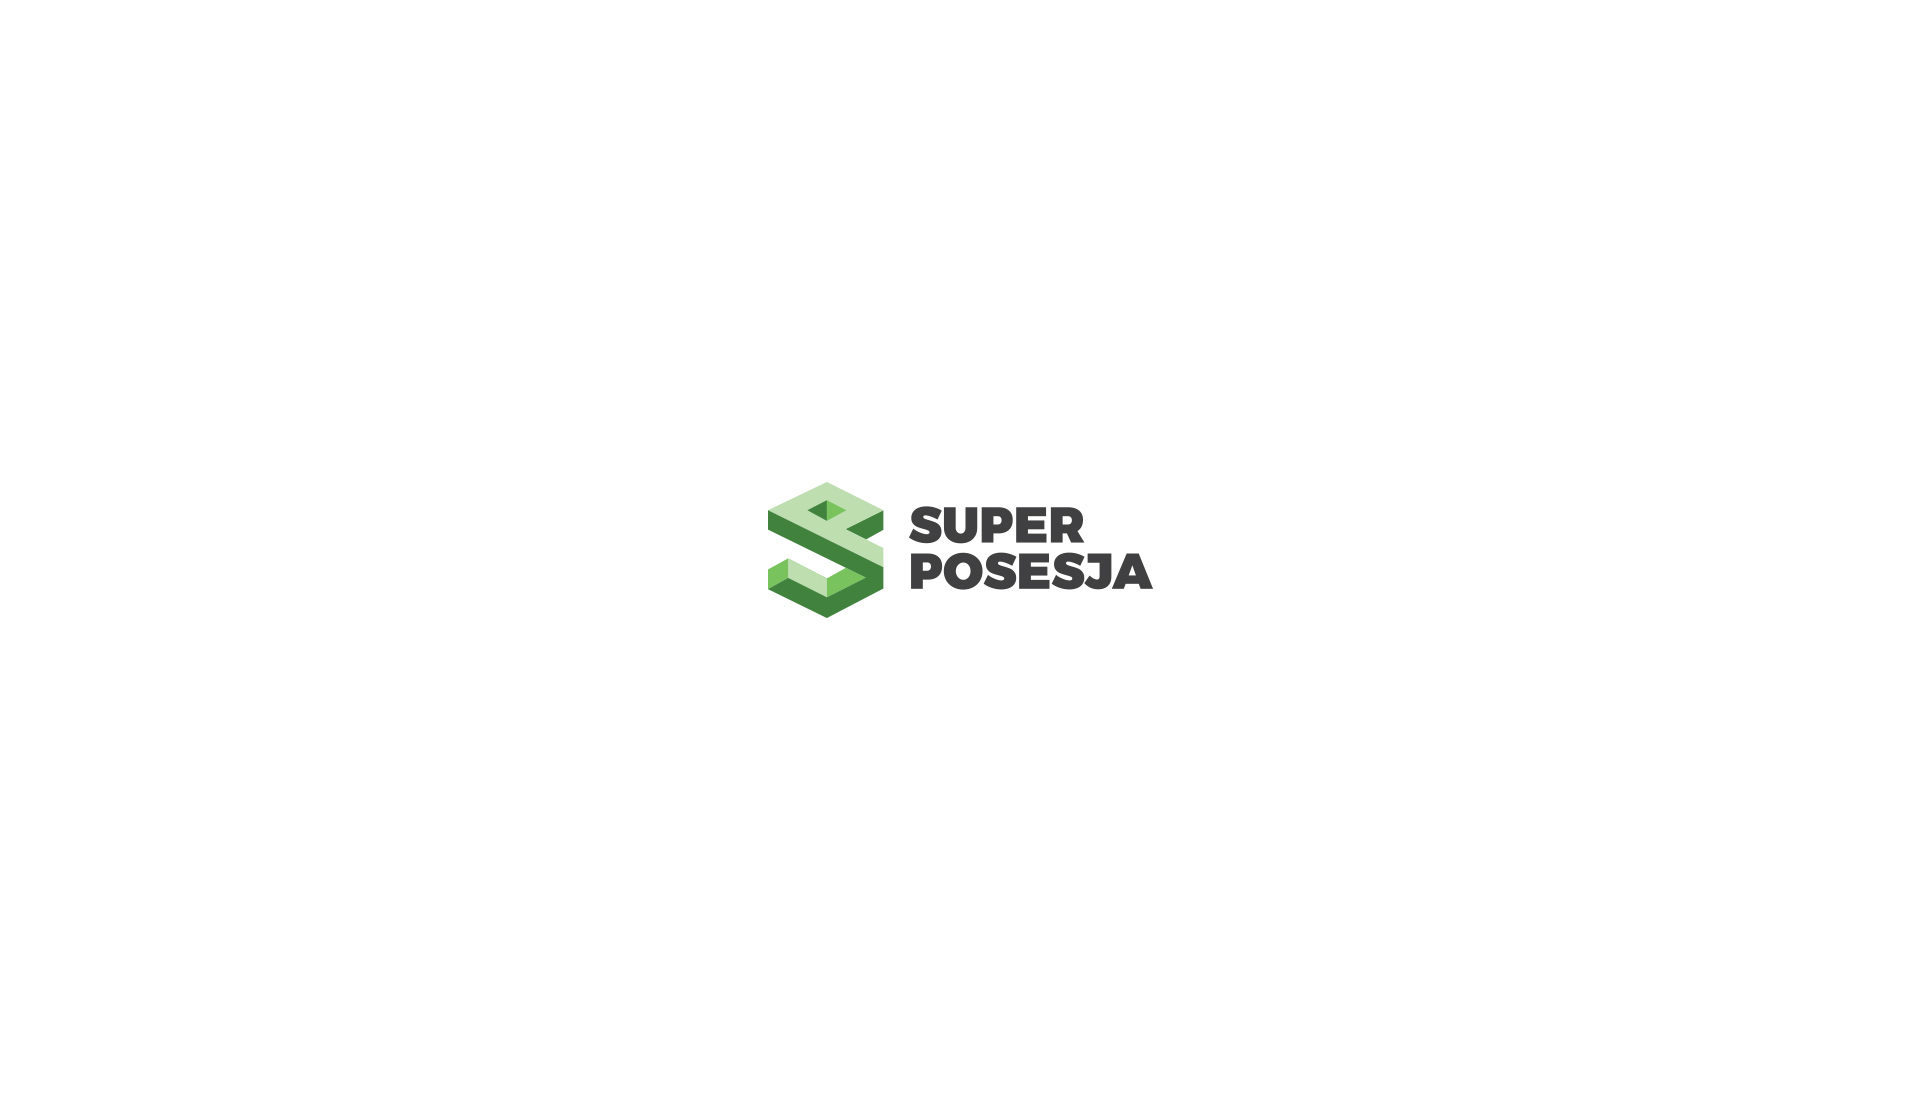 superposesja-1